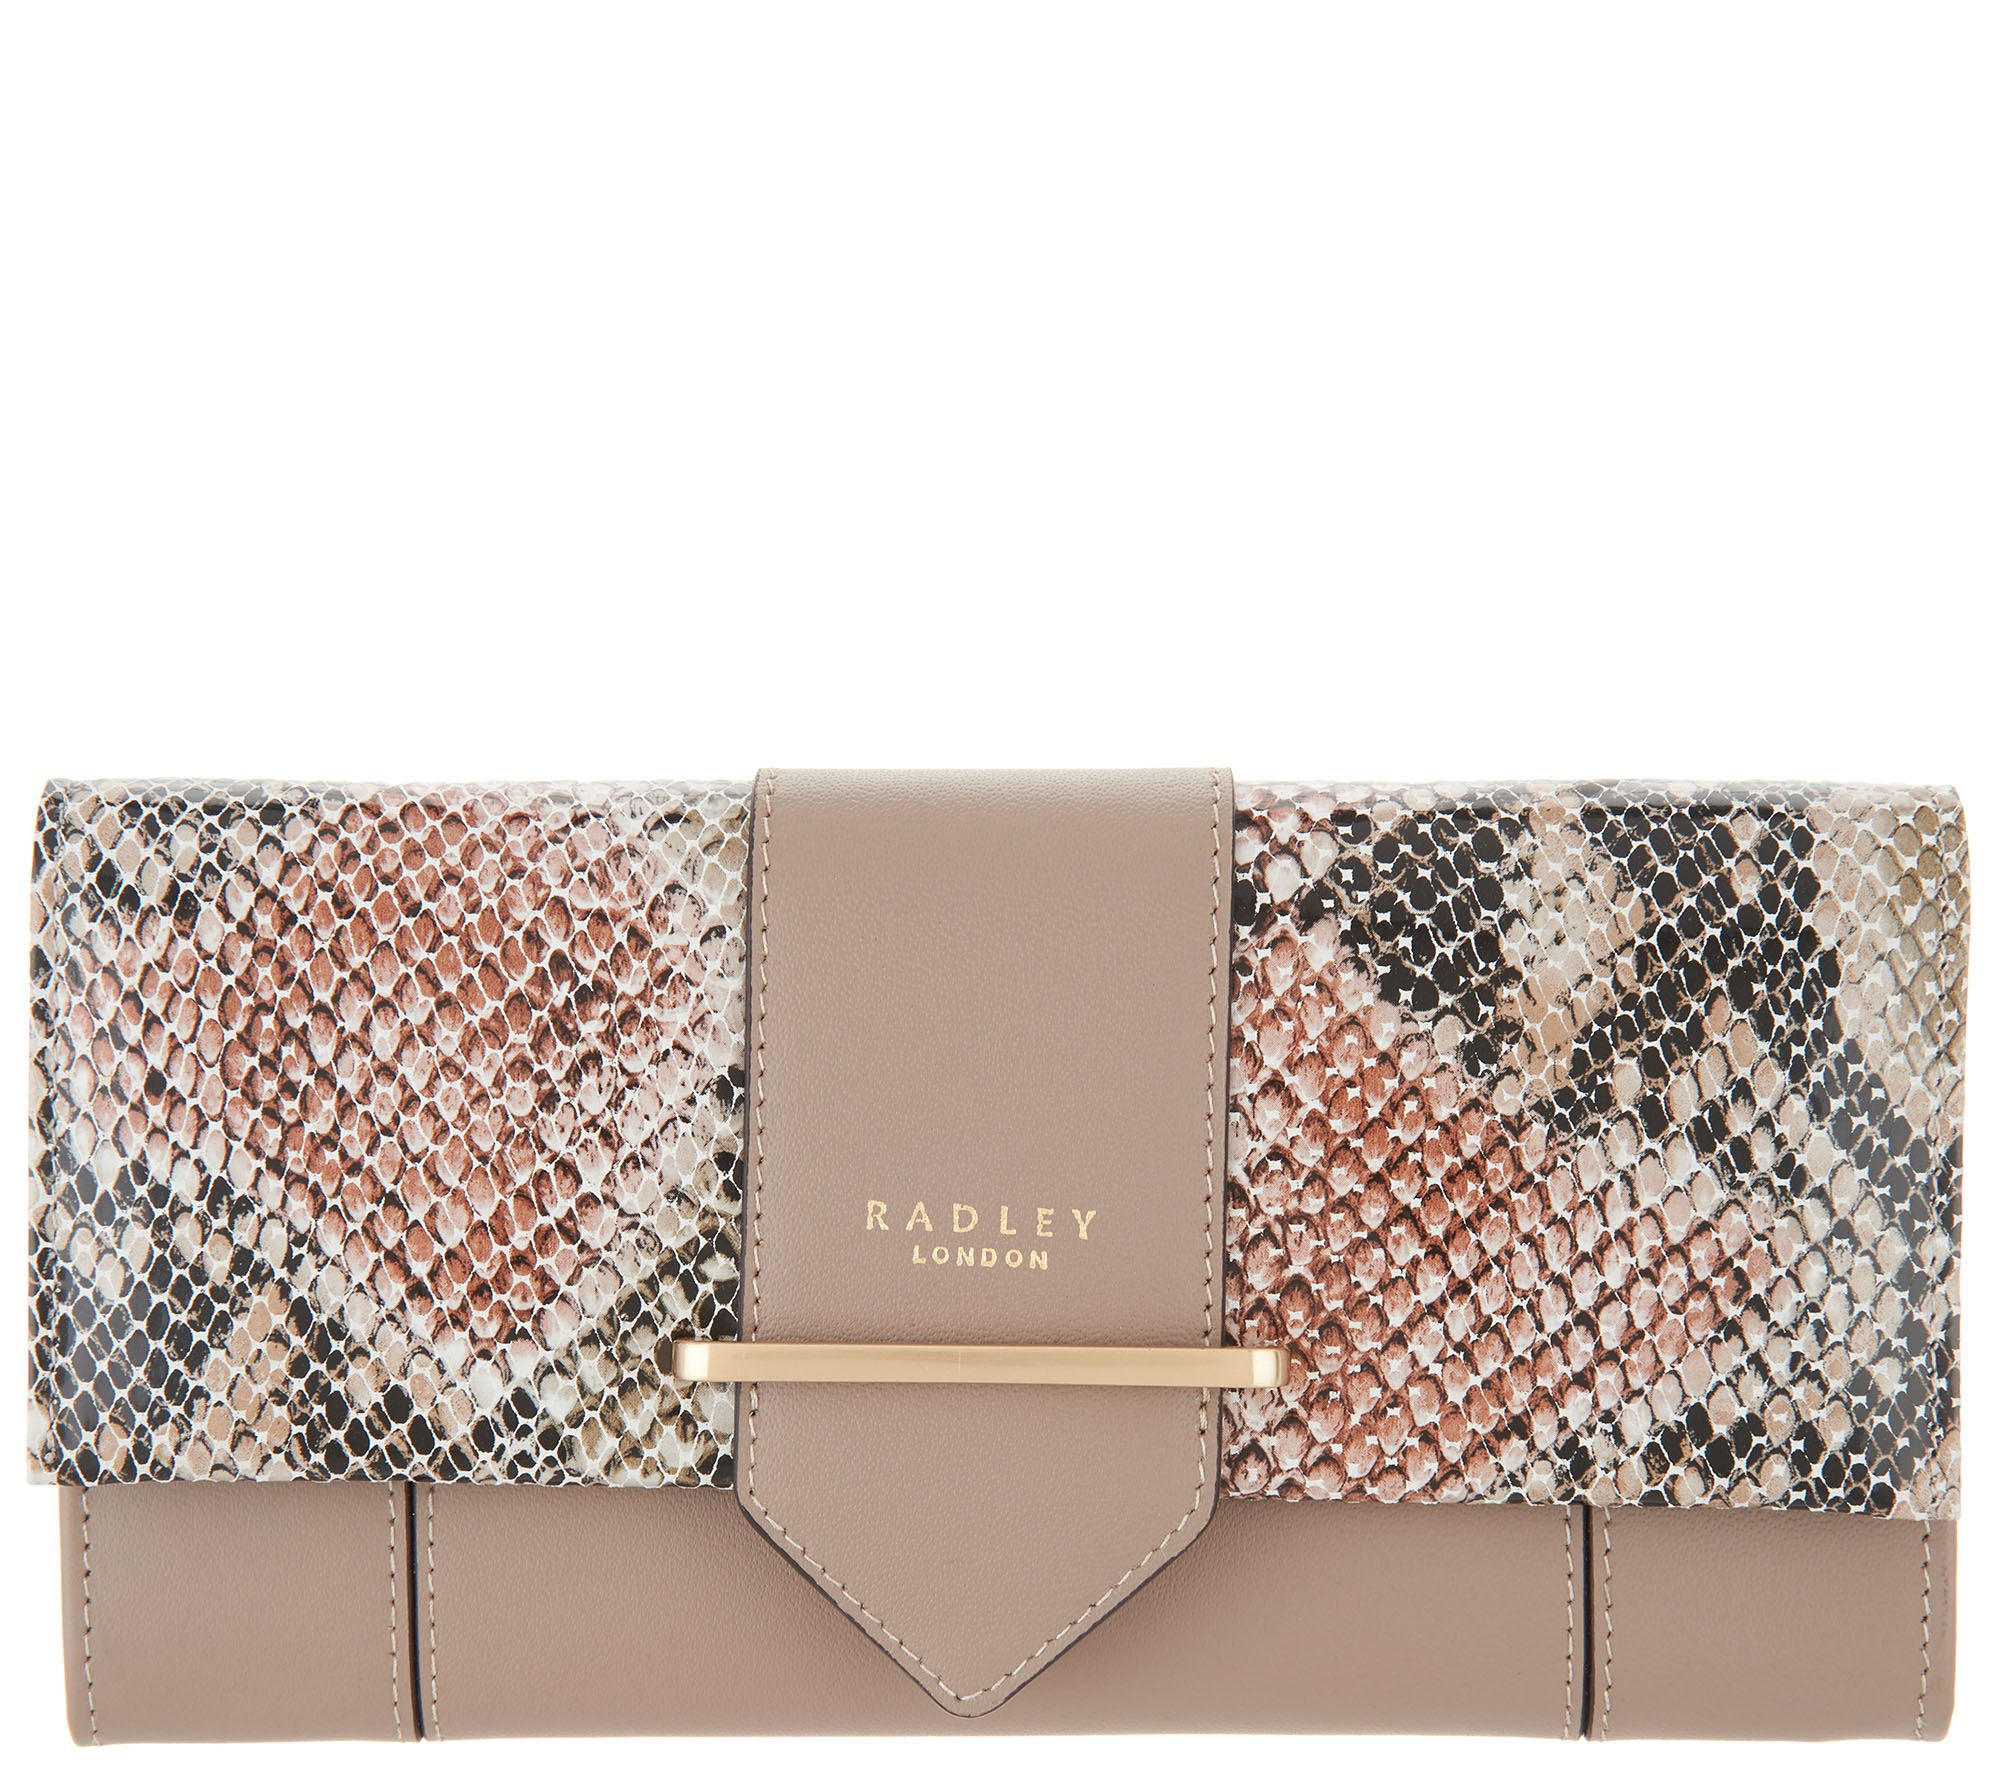 6331146e0c78 RADLEY London Palace Street Large Flapover Matinee Wallet - Page 1 — QVC.com